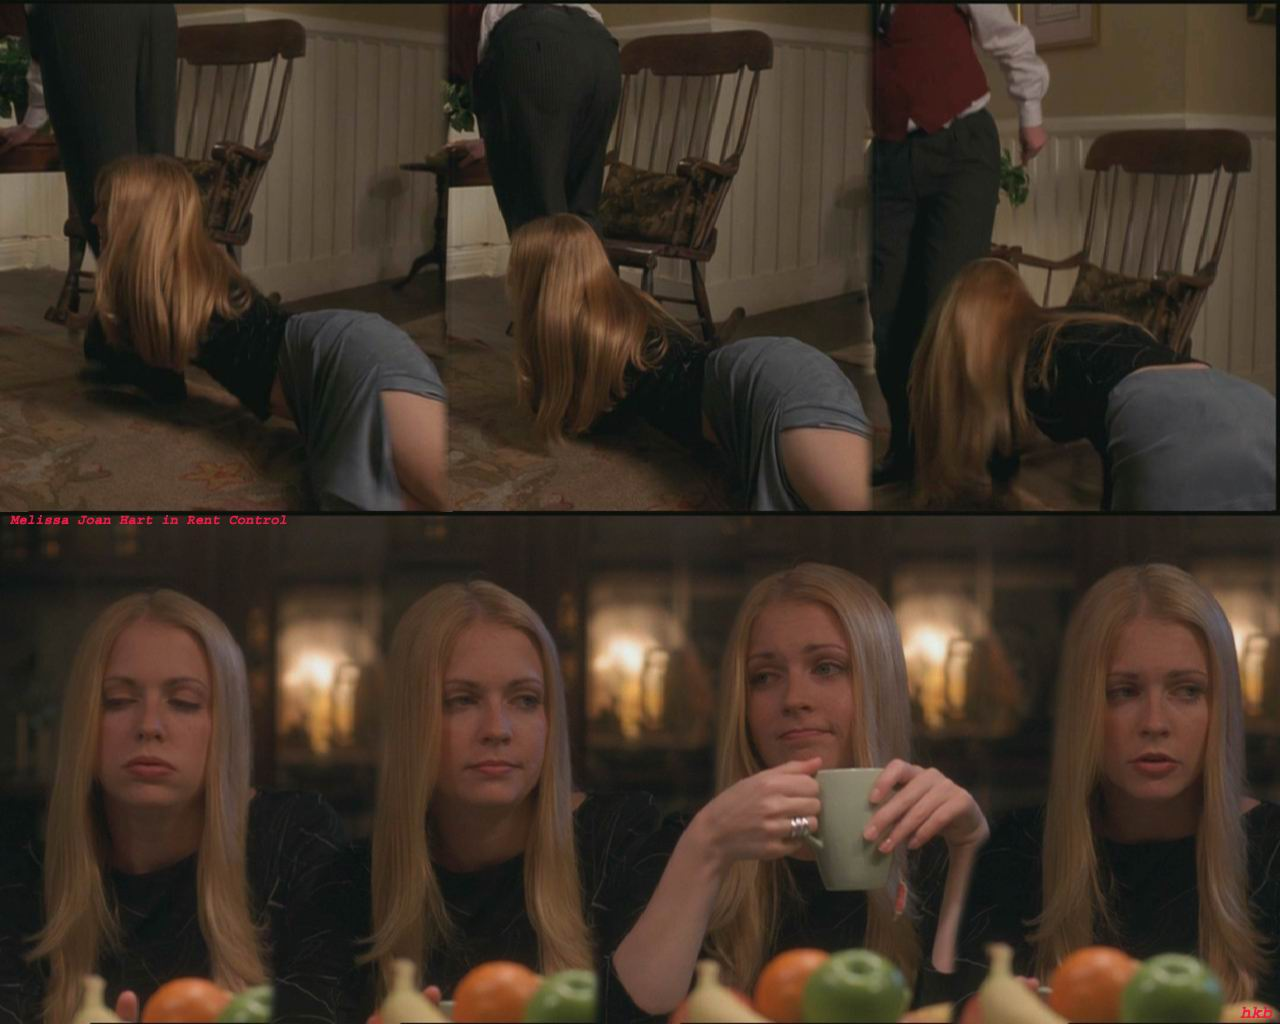 Melissa Joan Hart Nude - Page 2 Pictures, Naked, Oops -2244